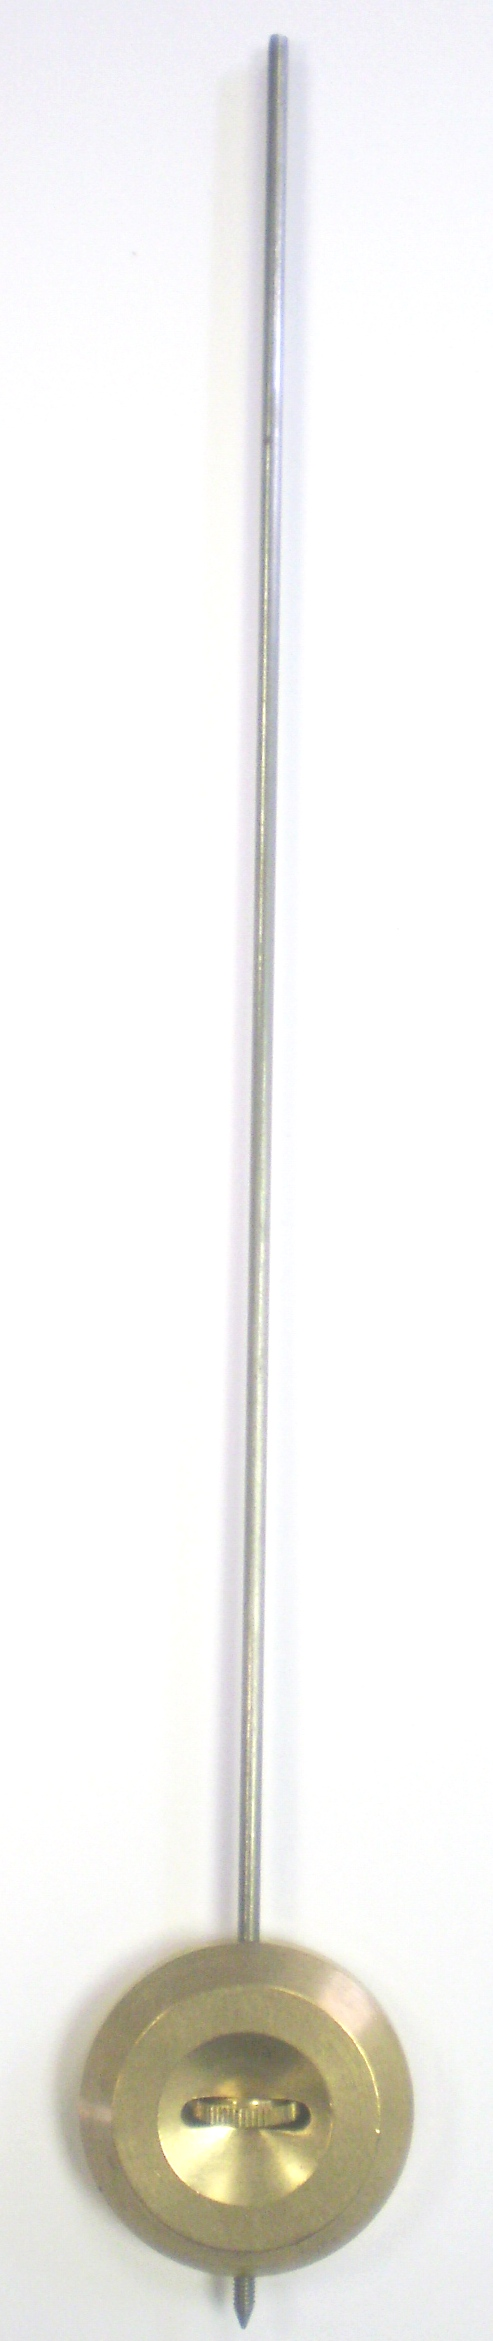 French Clock Pendulum 32mm